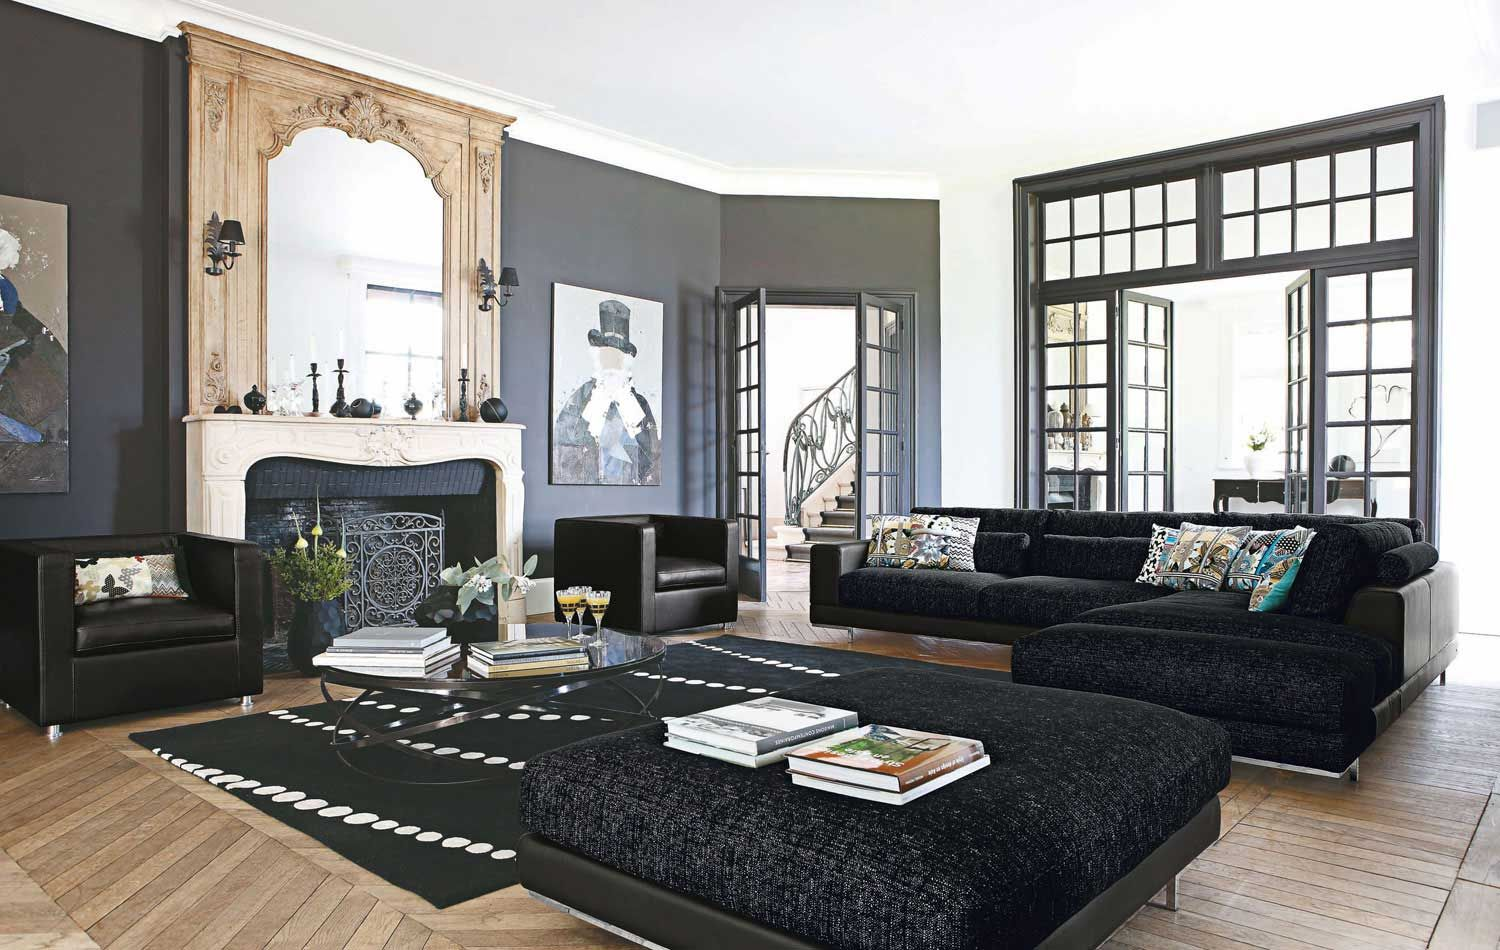 Calm Living Room Interior with L Shaped Black Sofapleted And. Black White Living Room Furniture. Living Room Arch Lamp Beside The Cozy Black Sectional Sofa. Black and White Living Room Designs Home Design and Decoration